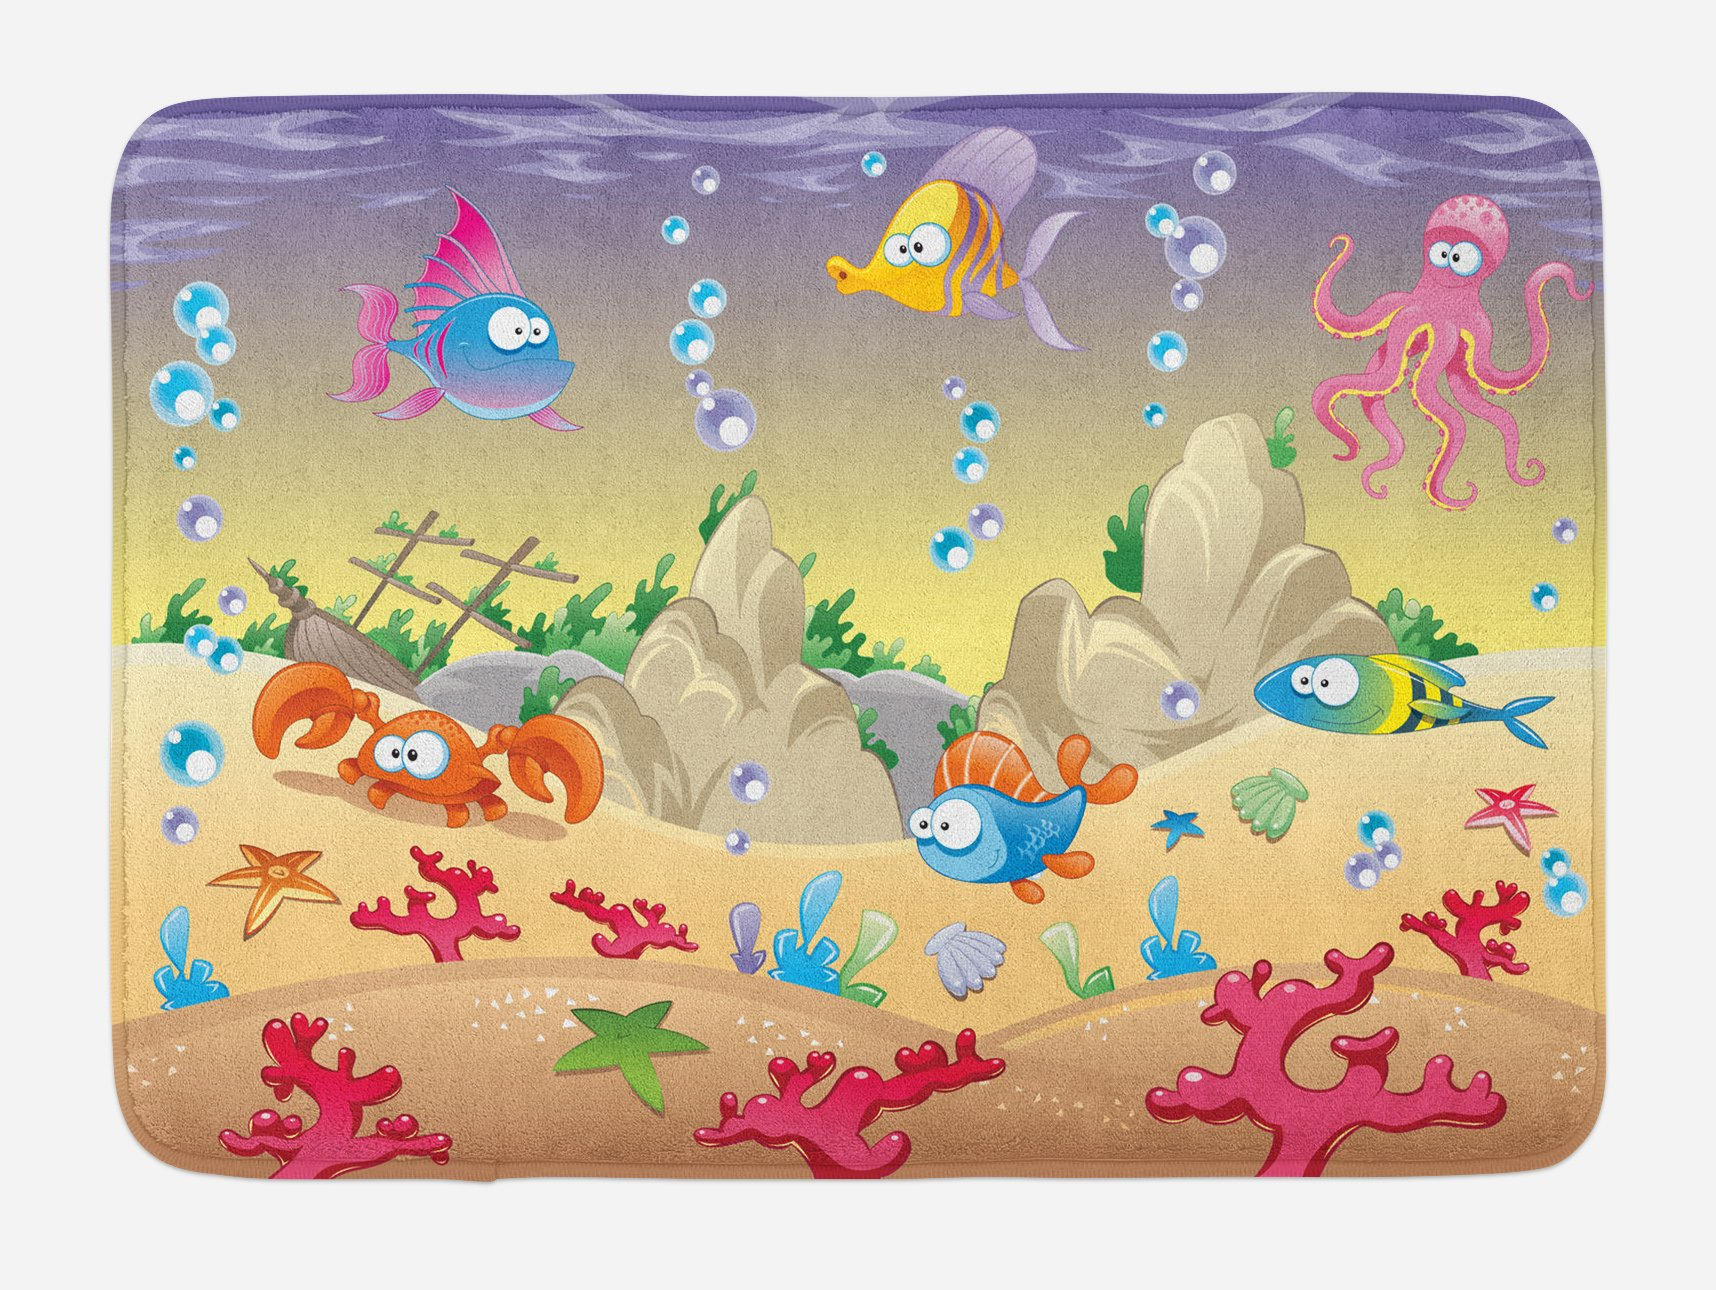 Ambesonne Underwater Bath Mat, Kids Cartoon Design Funny Sea Animals Fishes Sunken Ship Coral Reef and Bubbles, Plush Bathroom Decor Mat with Non Slip Backing, 29.5 W X 17.5 W Inches, Multicolor